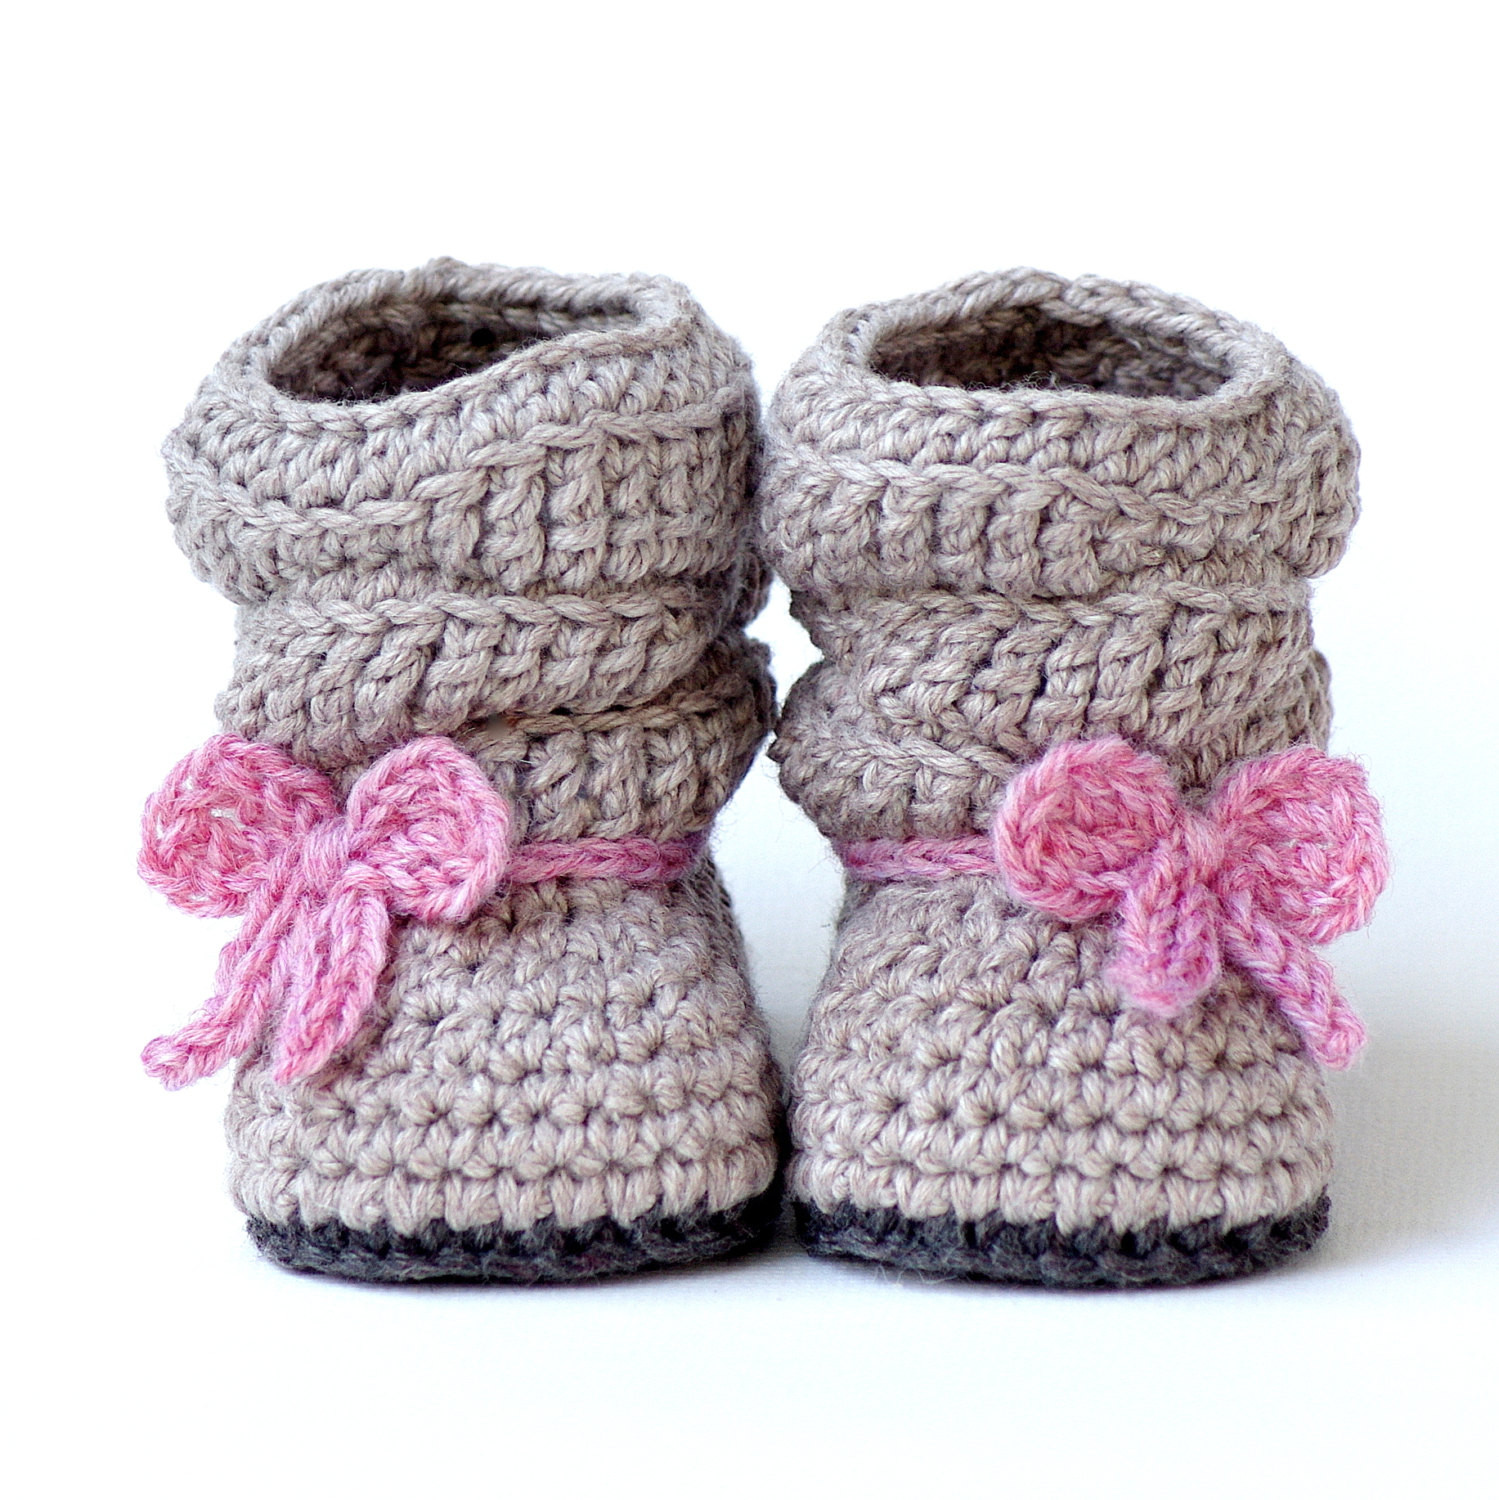 Crochet Boots Best Of Crochet Pattern 217 Baby Slouch Boot Mia Boot Instant Of Brilliant 43 Photos Crochet Boots